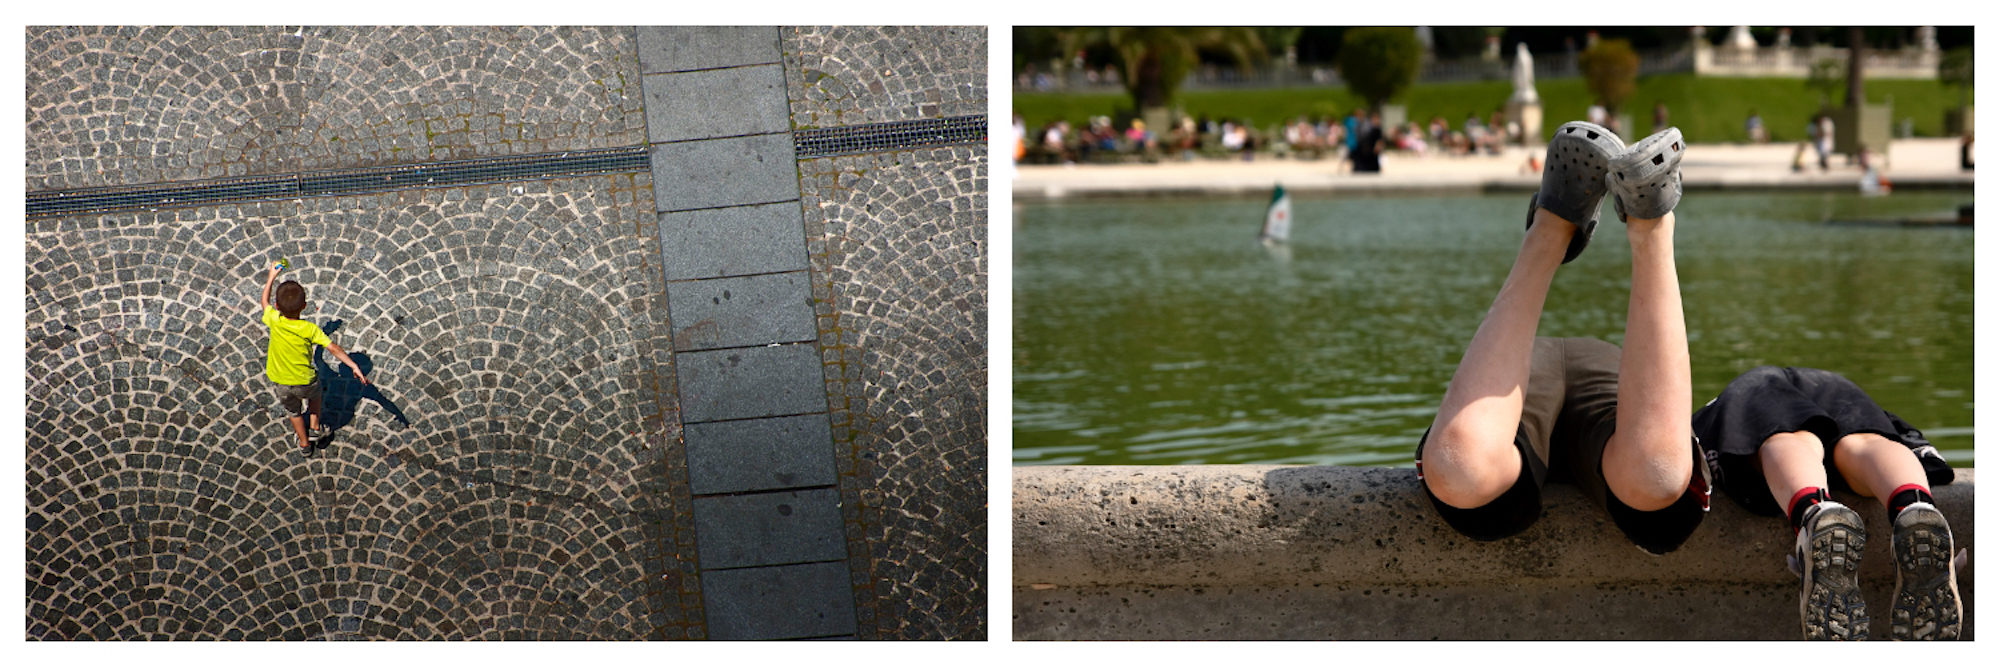 An aerial view of kid in a yellow t-shirt, walking across a cobblestone square in summer in Paris (left). Two pairs of children's legs as they lean into the pond at the Jardin des Tuileries, a popular kid-friendly spot in Paris (right).